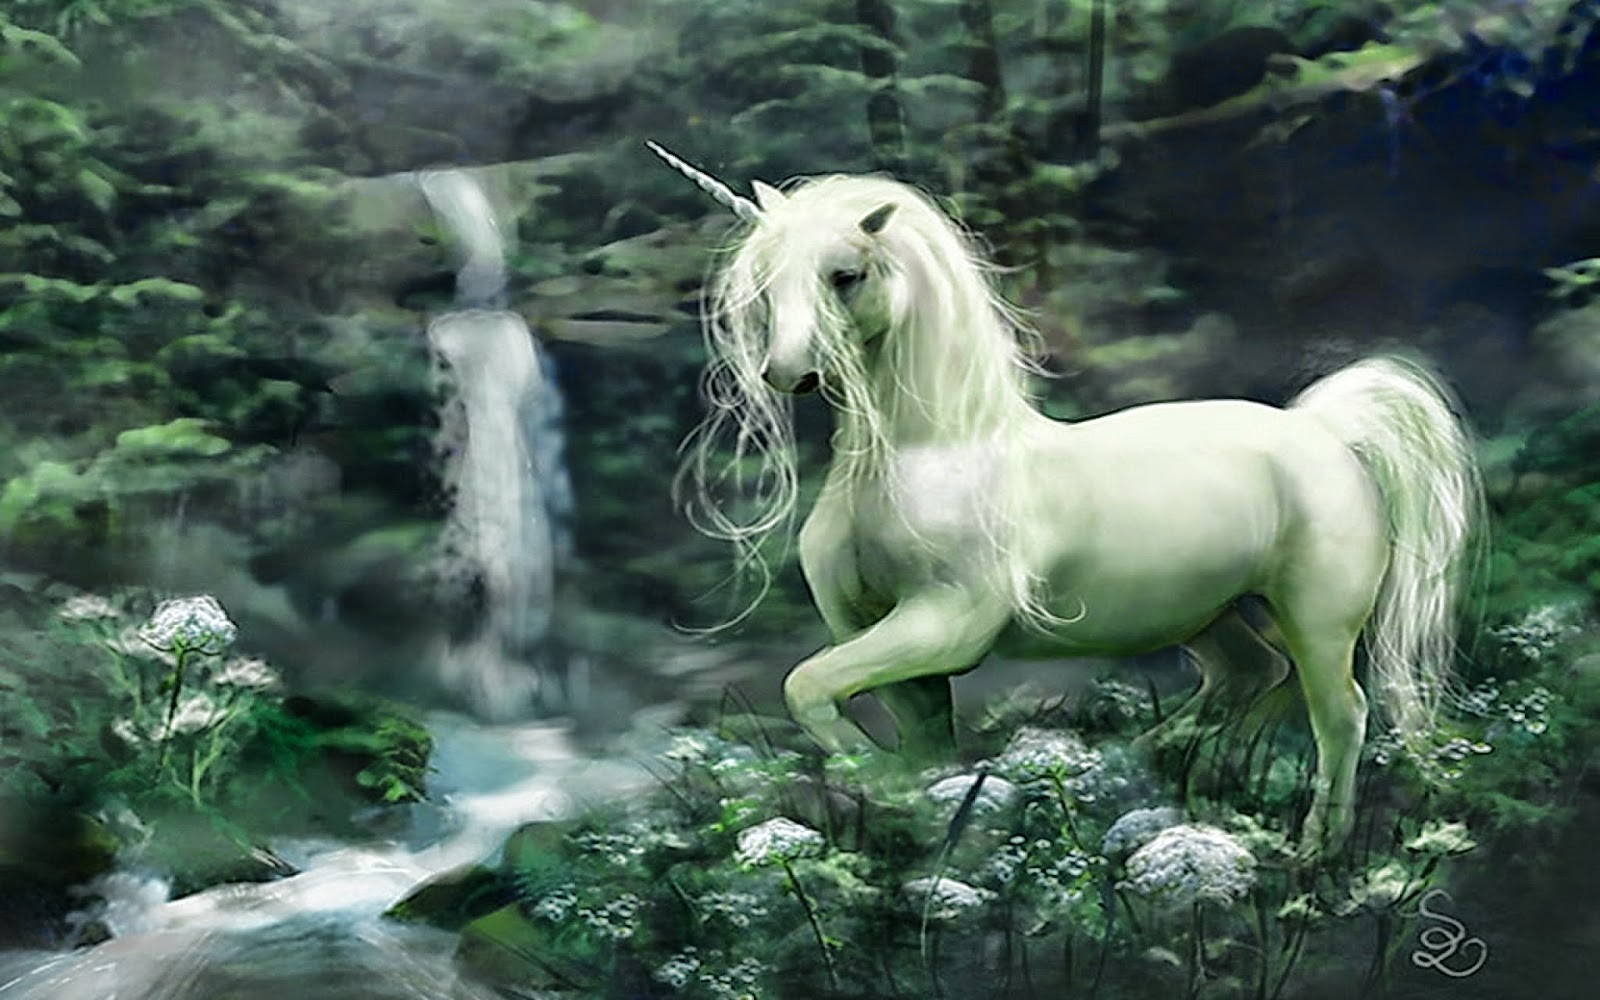 Amazing   Wallpaper Horse Mystical - 3d-abstract_widewallpaper_white-unicorn_42625  Trends_8310098.jpg